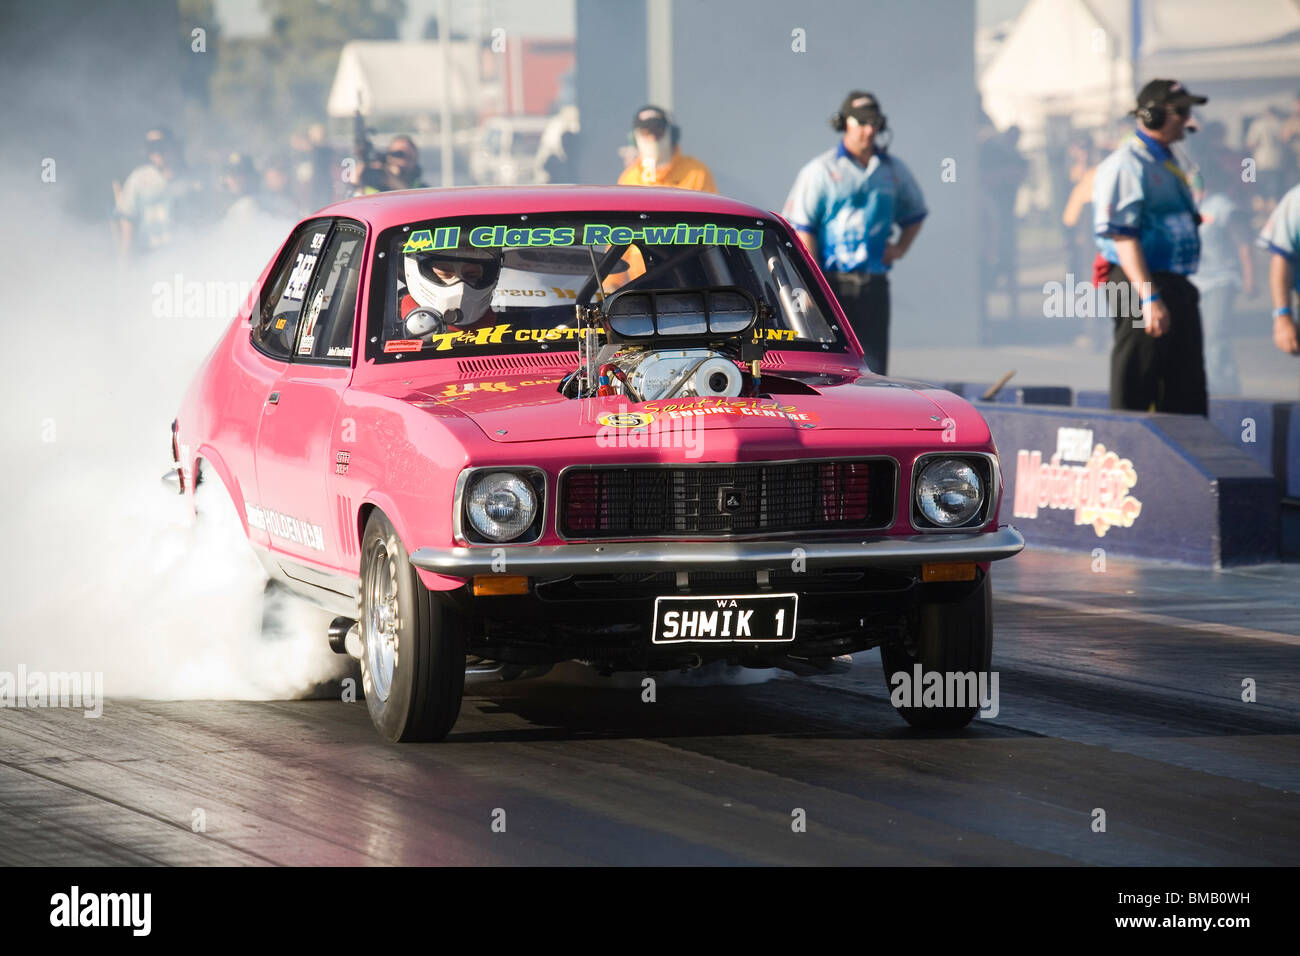 Supercharged Holden Torana drag racing car performing a burnout prior to racing at the Perth Motorplex, Western Stock Photo